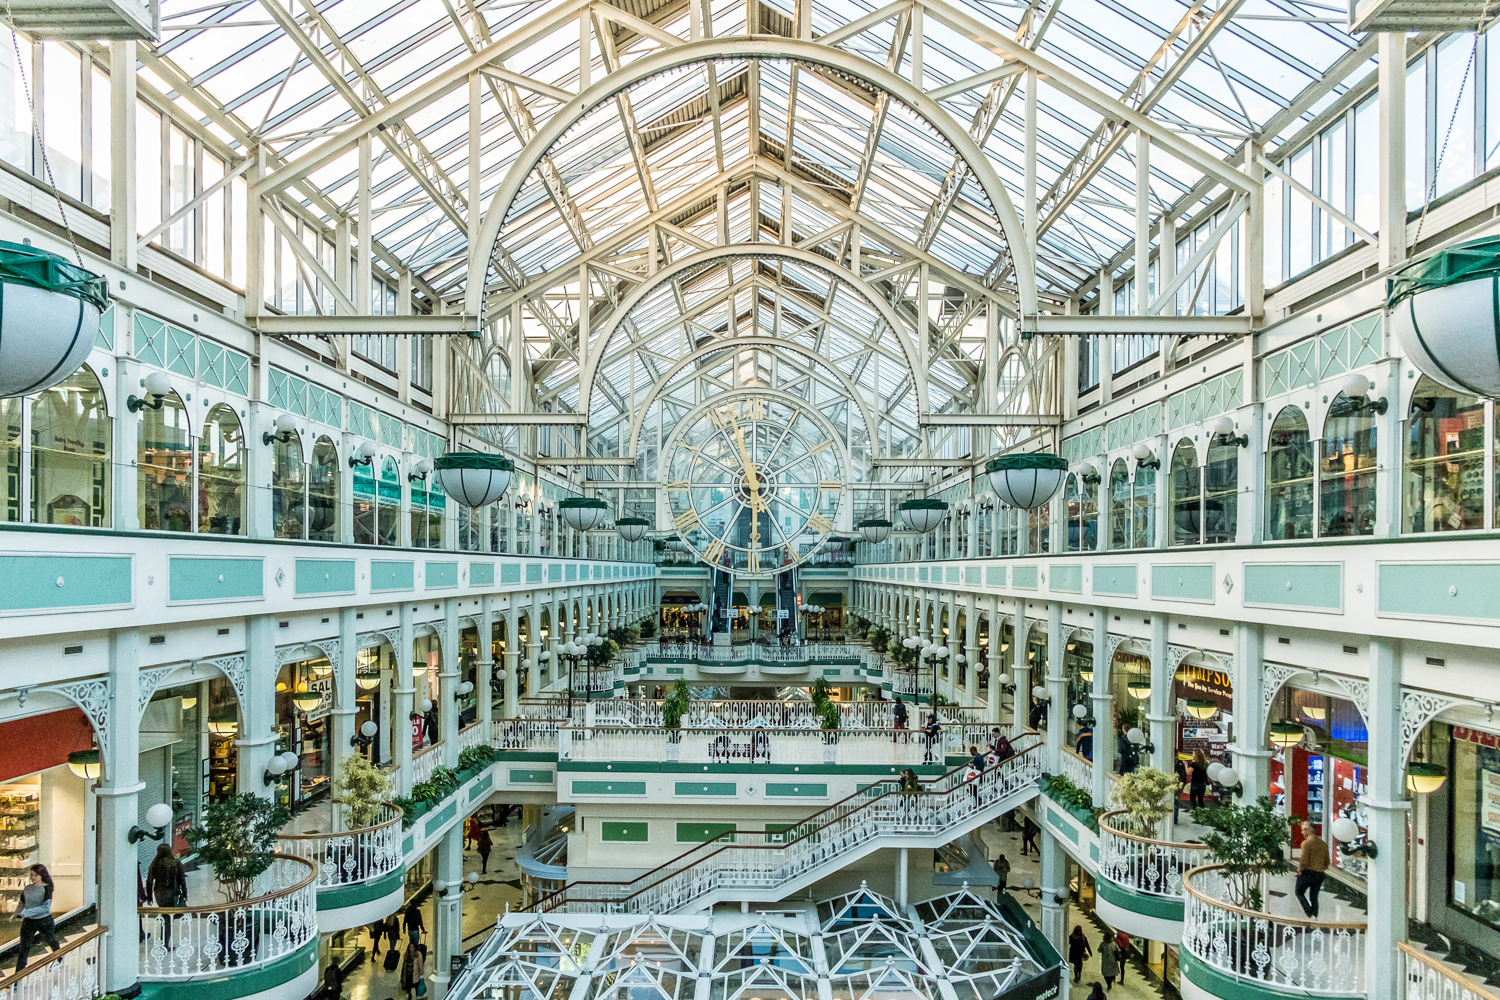 Stephen's Green Shopping Center, Dublin, Ireland